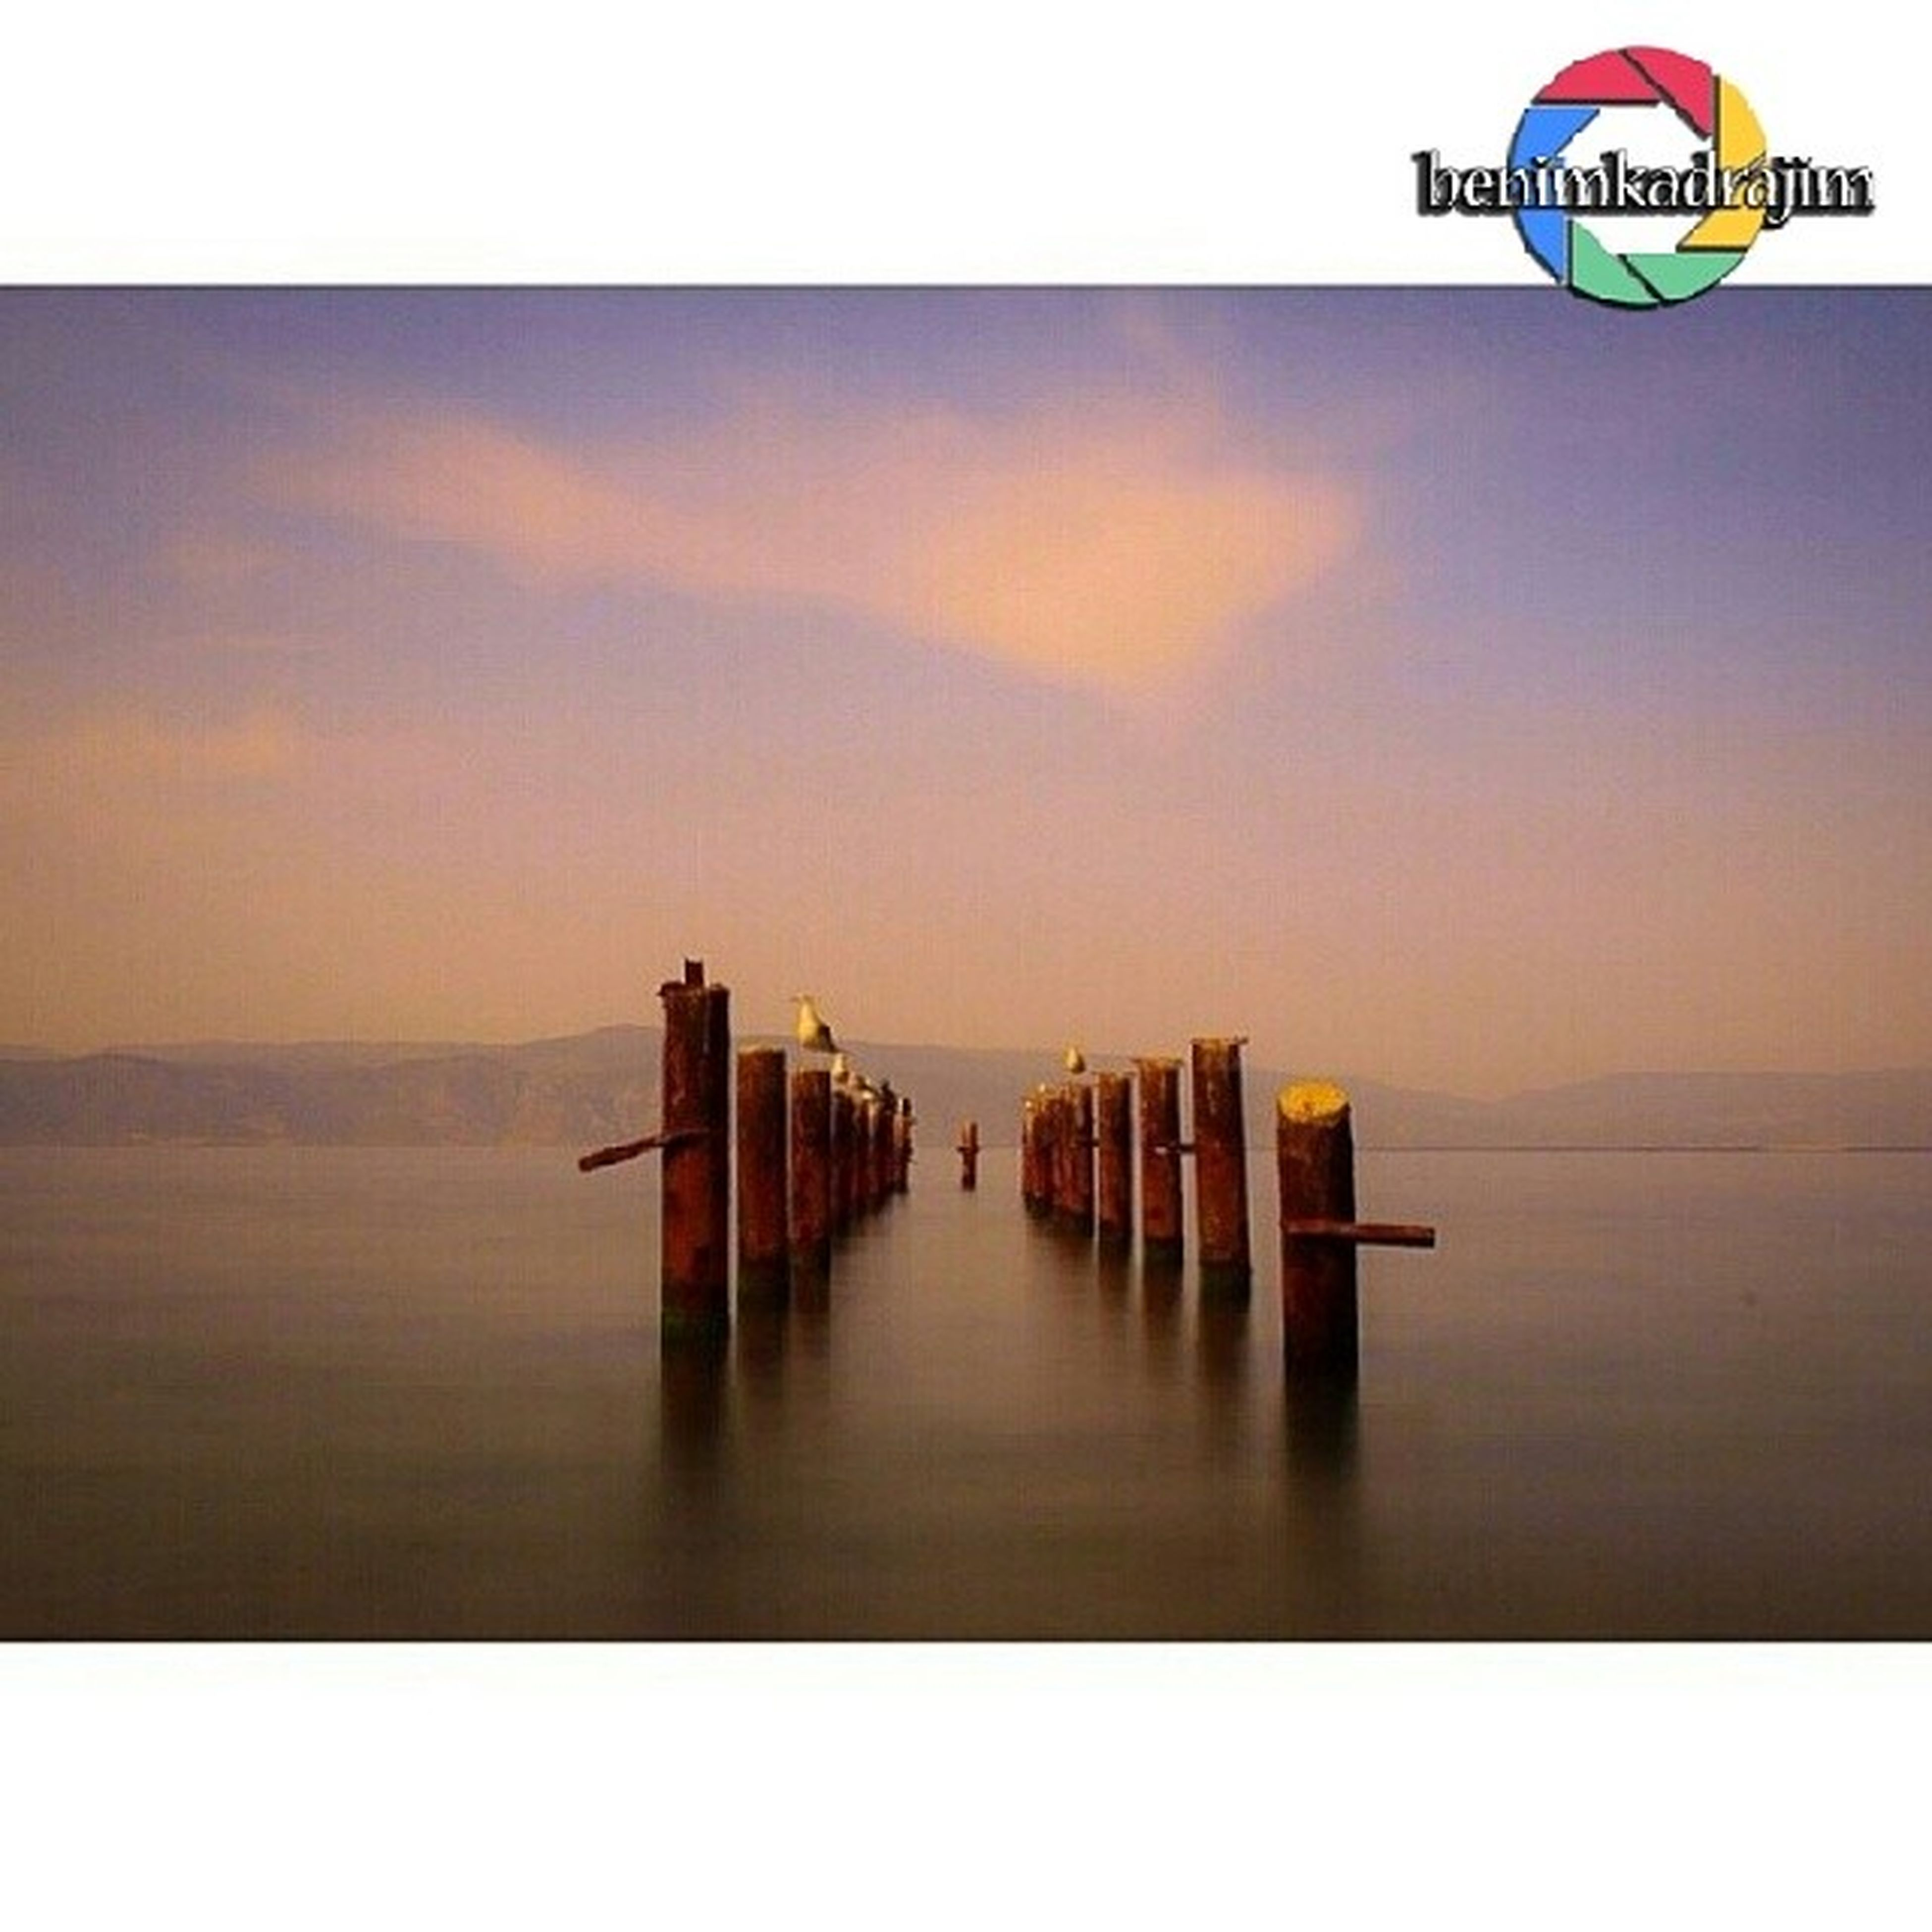 water, sea, pier, sky, sunset, tranquil scene, horizon over water, tranquility, waterfront, built structure, transfer print, scenics, auto post production filter, reflection, nature, beauty in nature, architecture, jetty, outdoors, calm